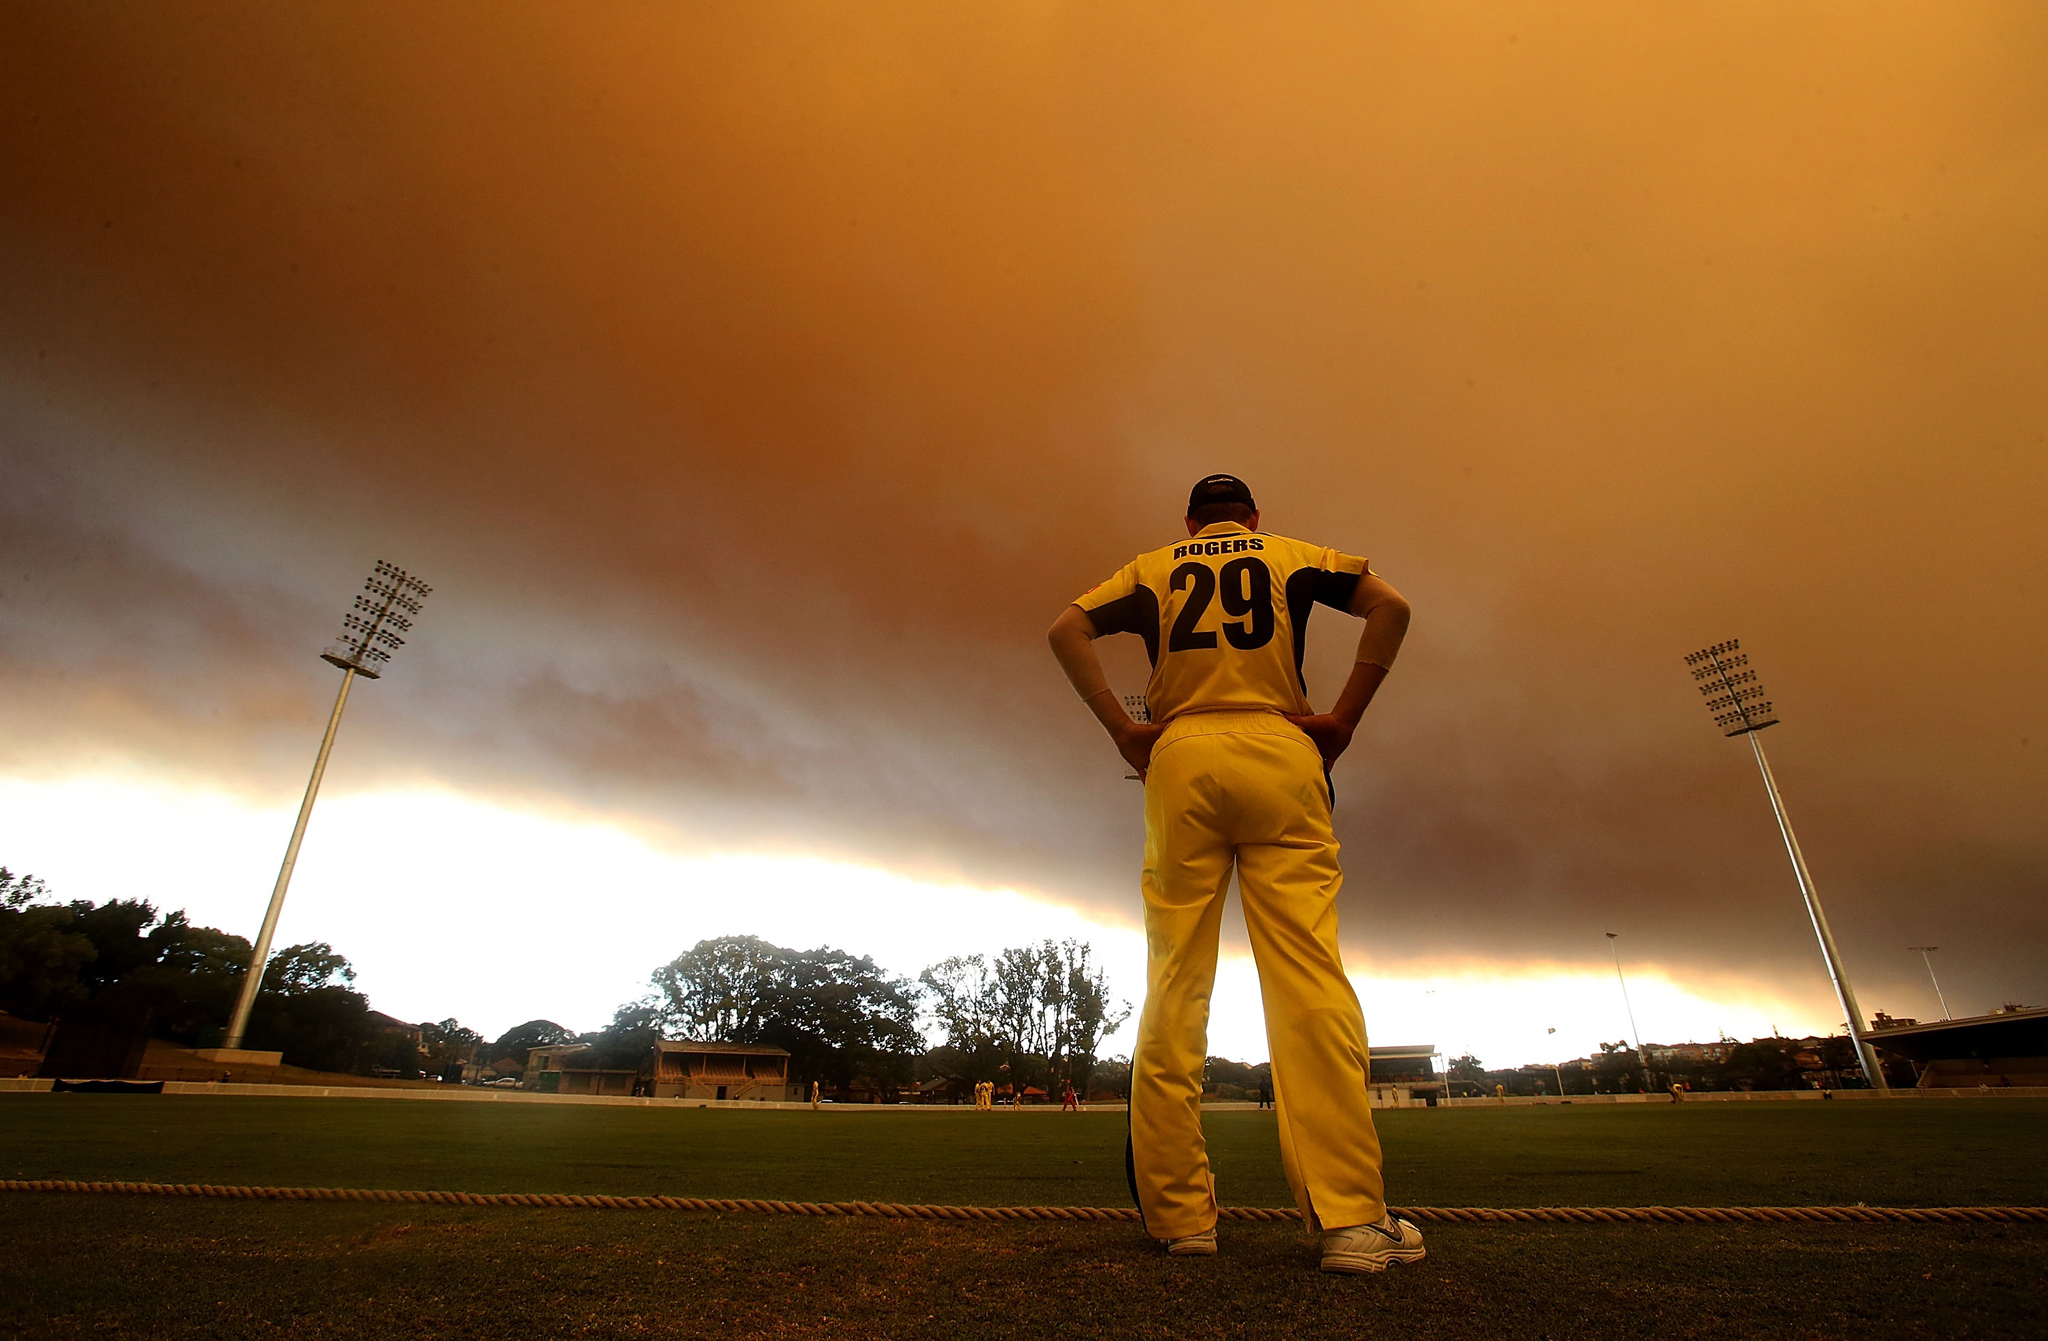 Sydney Shrouded In Smoke As Bushfires Rage Across NSW...SYDNEY, AUSTRALIA - OCTOBER 17:  A general view of play during the Ryobi Cup cricket match between the South Australian Redbacks and the Western Australia Warriors at Drummoyne Oval on October 17, 2013 in Sydney, Australia. Sydney is shrouded in a haze of smoke as brushfires rage in the western Sydney suburbs of Springwood, Winmalee and Lithgow.  (Photo by Mark Metcalfe/Getty Images)